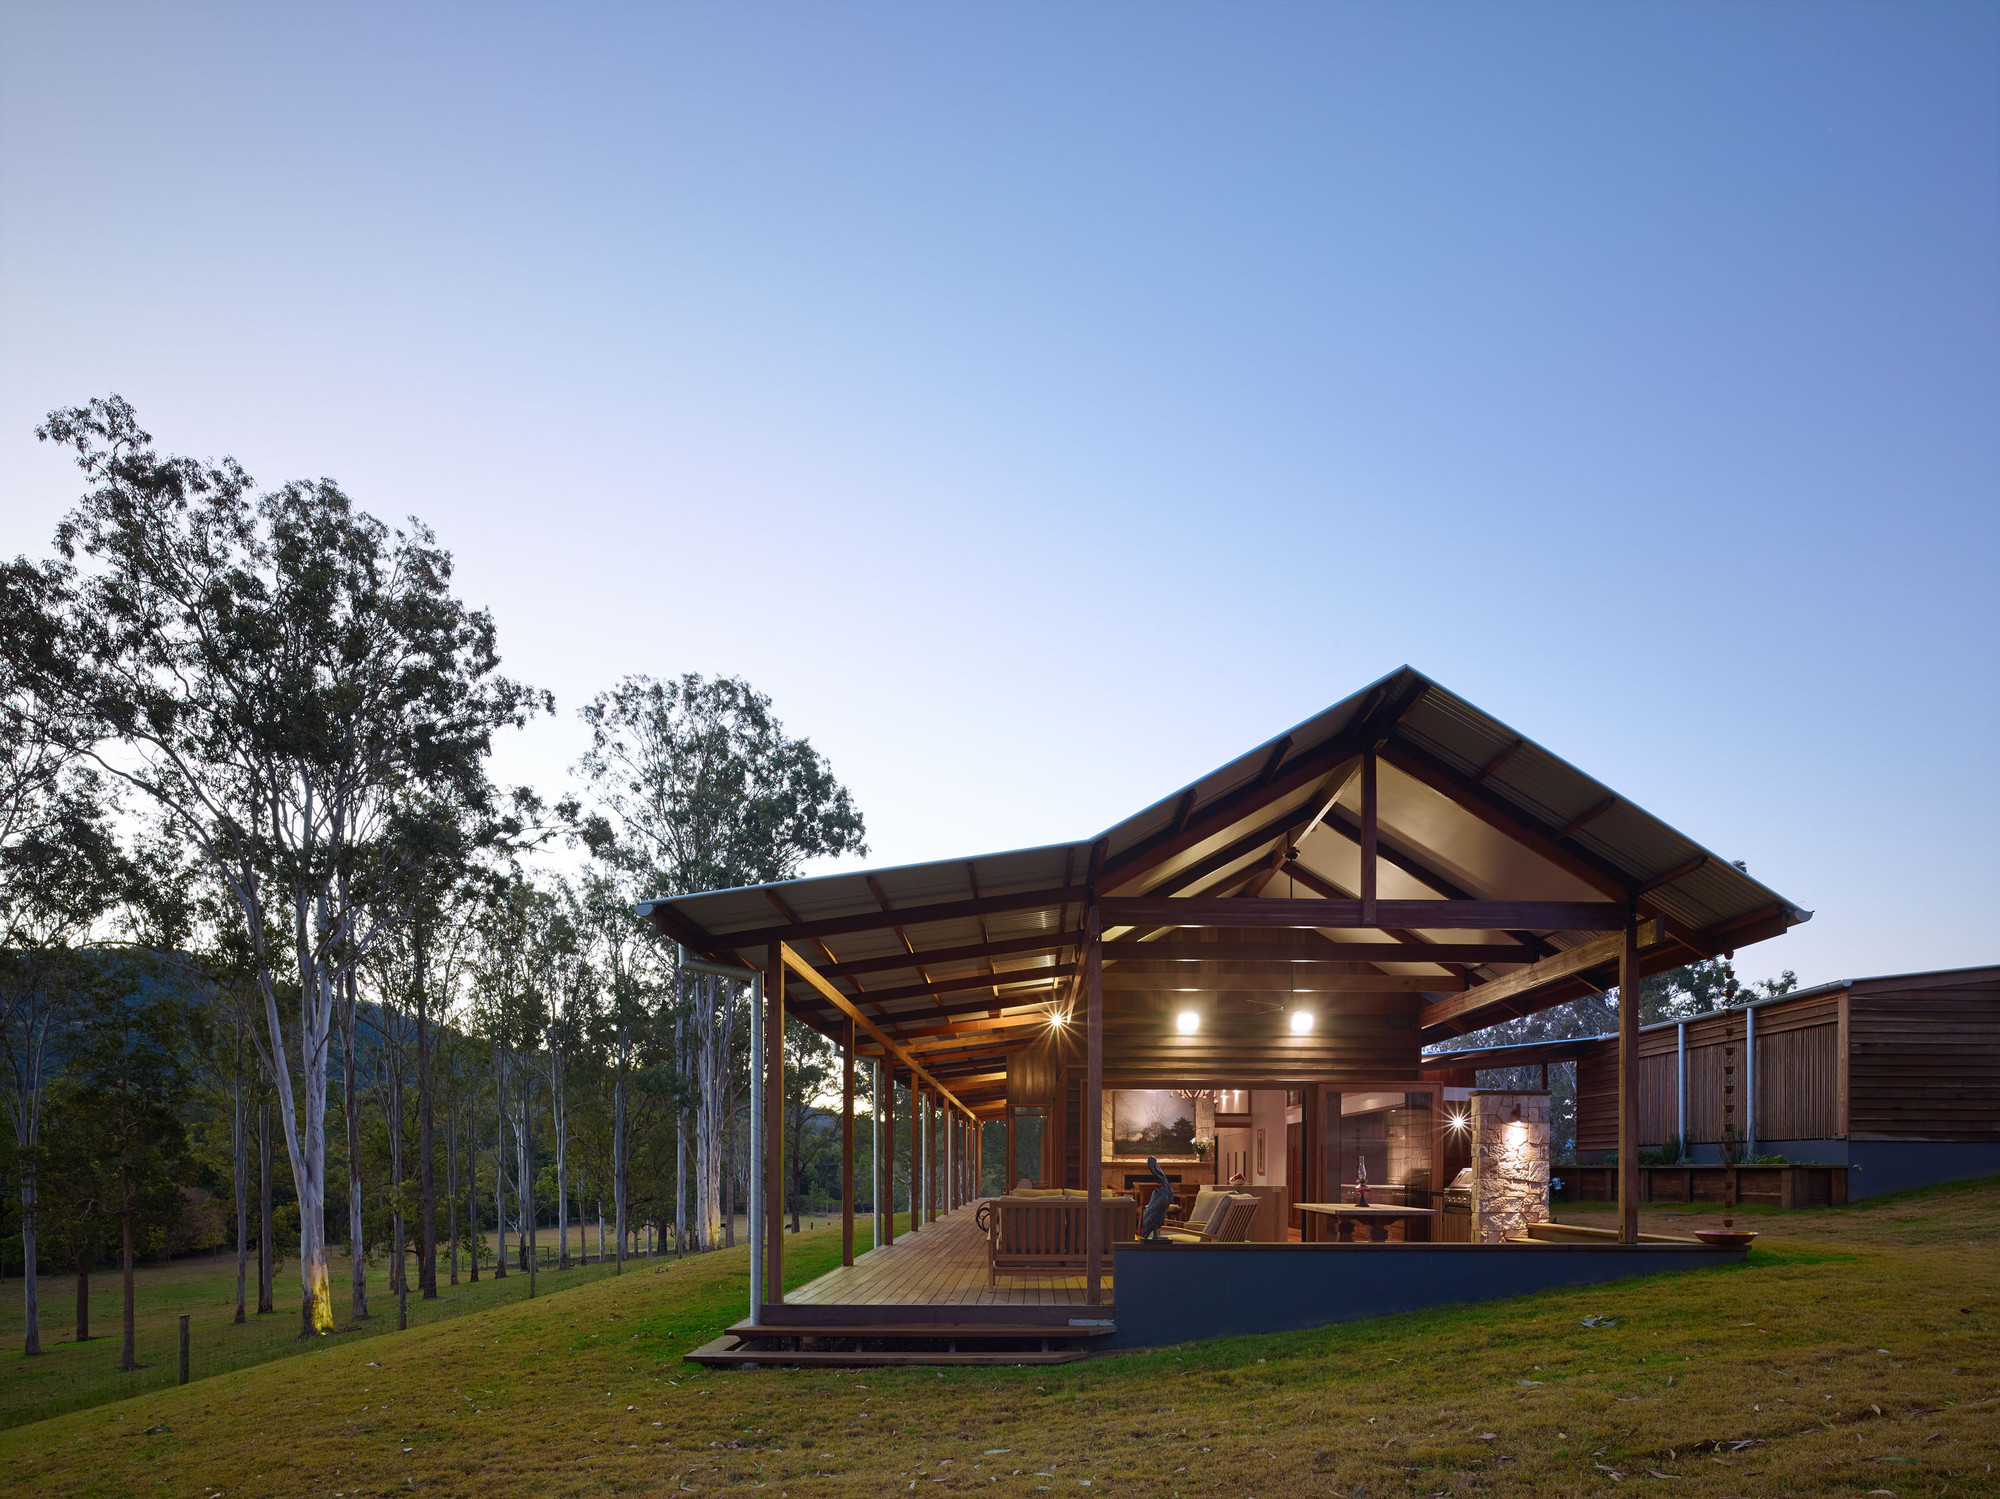 Hinterland house shaun lockyer architects archdaily for Architectural house plans australia